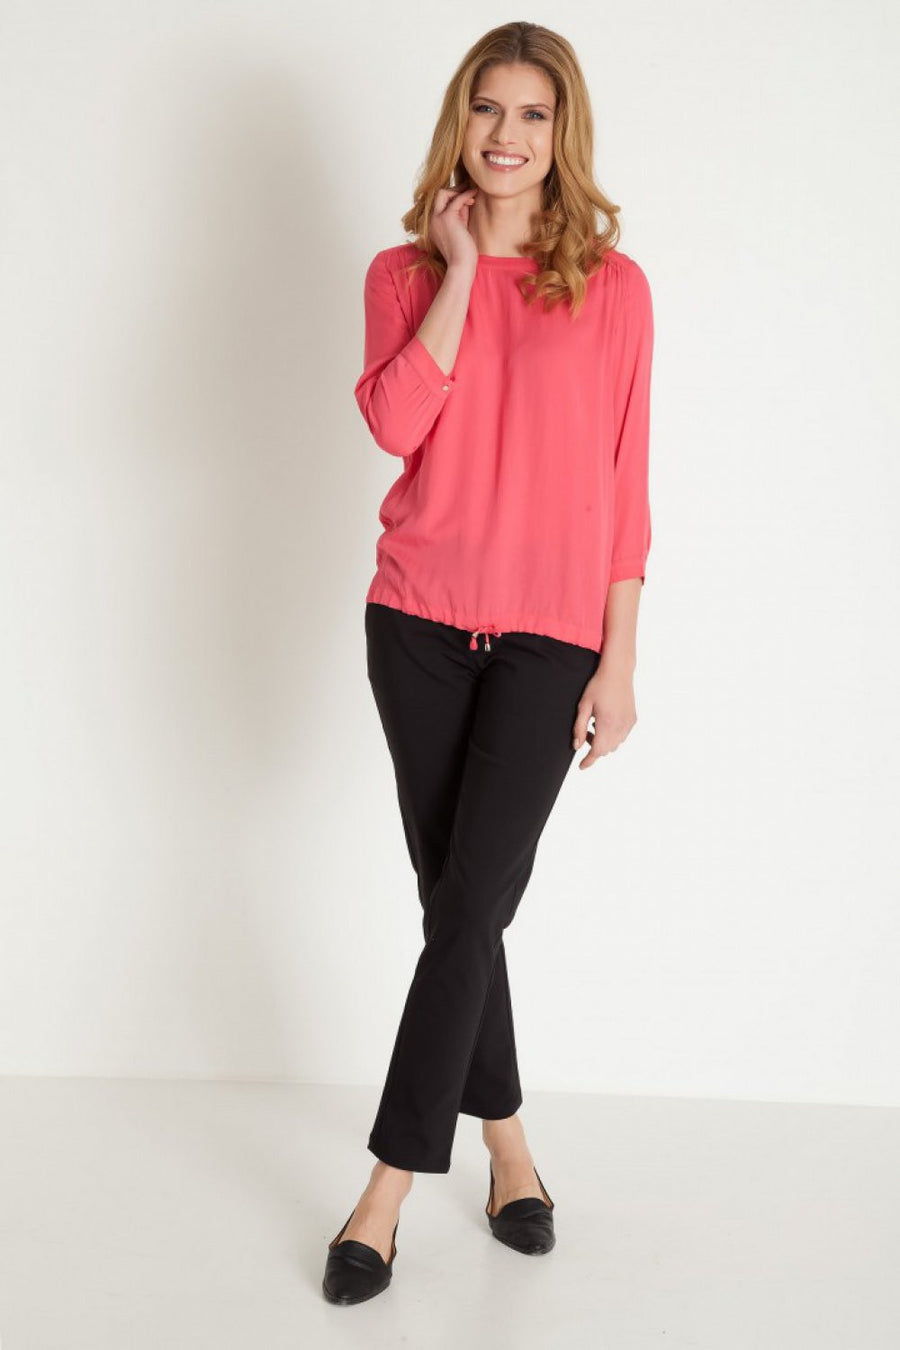 Blouse 77919 Greenpoint-Women`s Blouses & Tunics-Greenpoint-pink-36-TRESFANCY